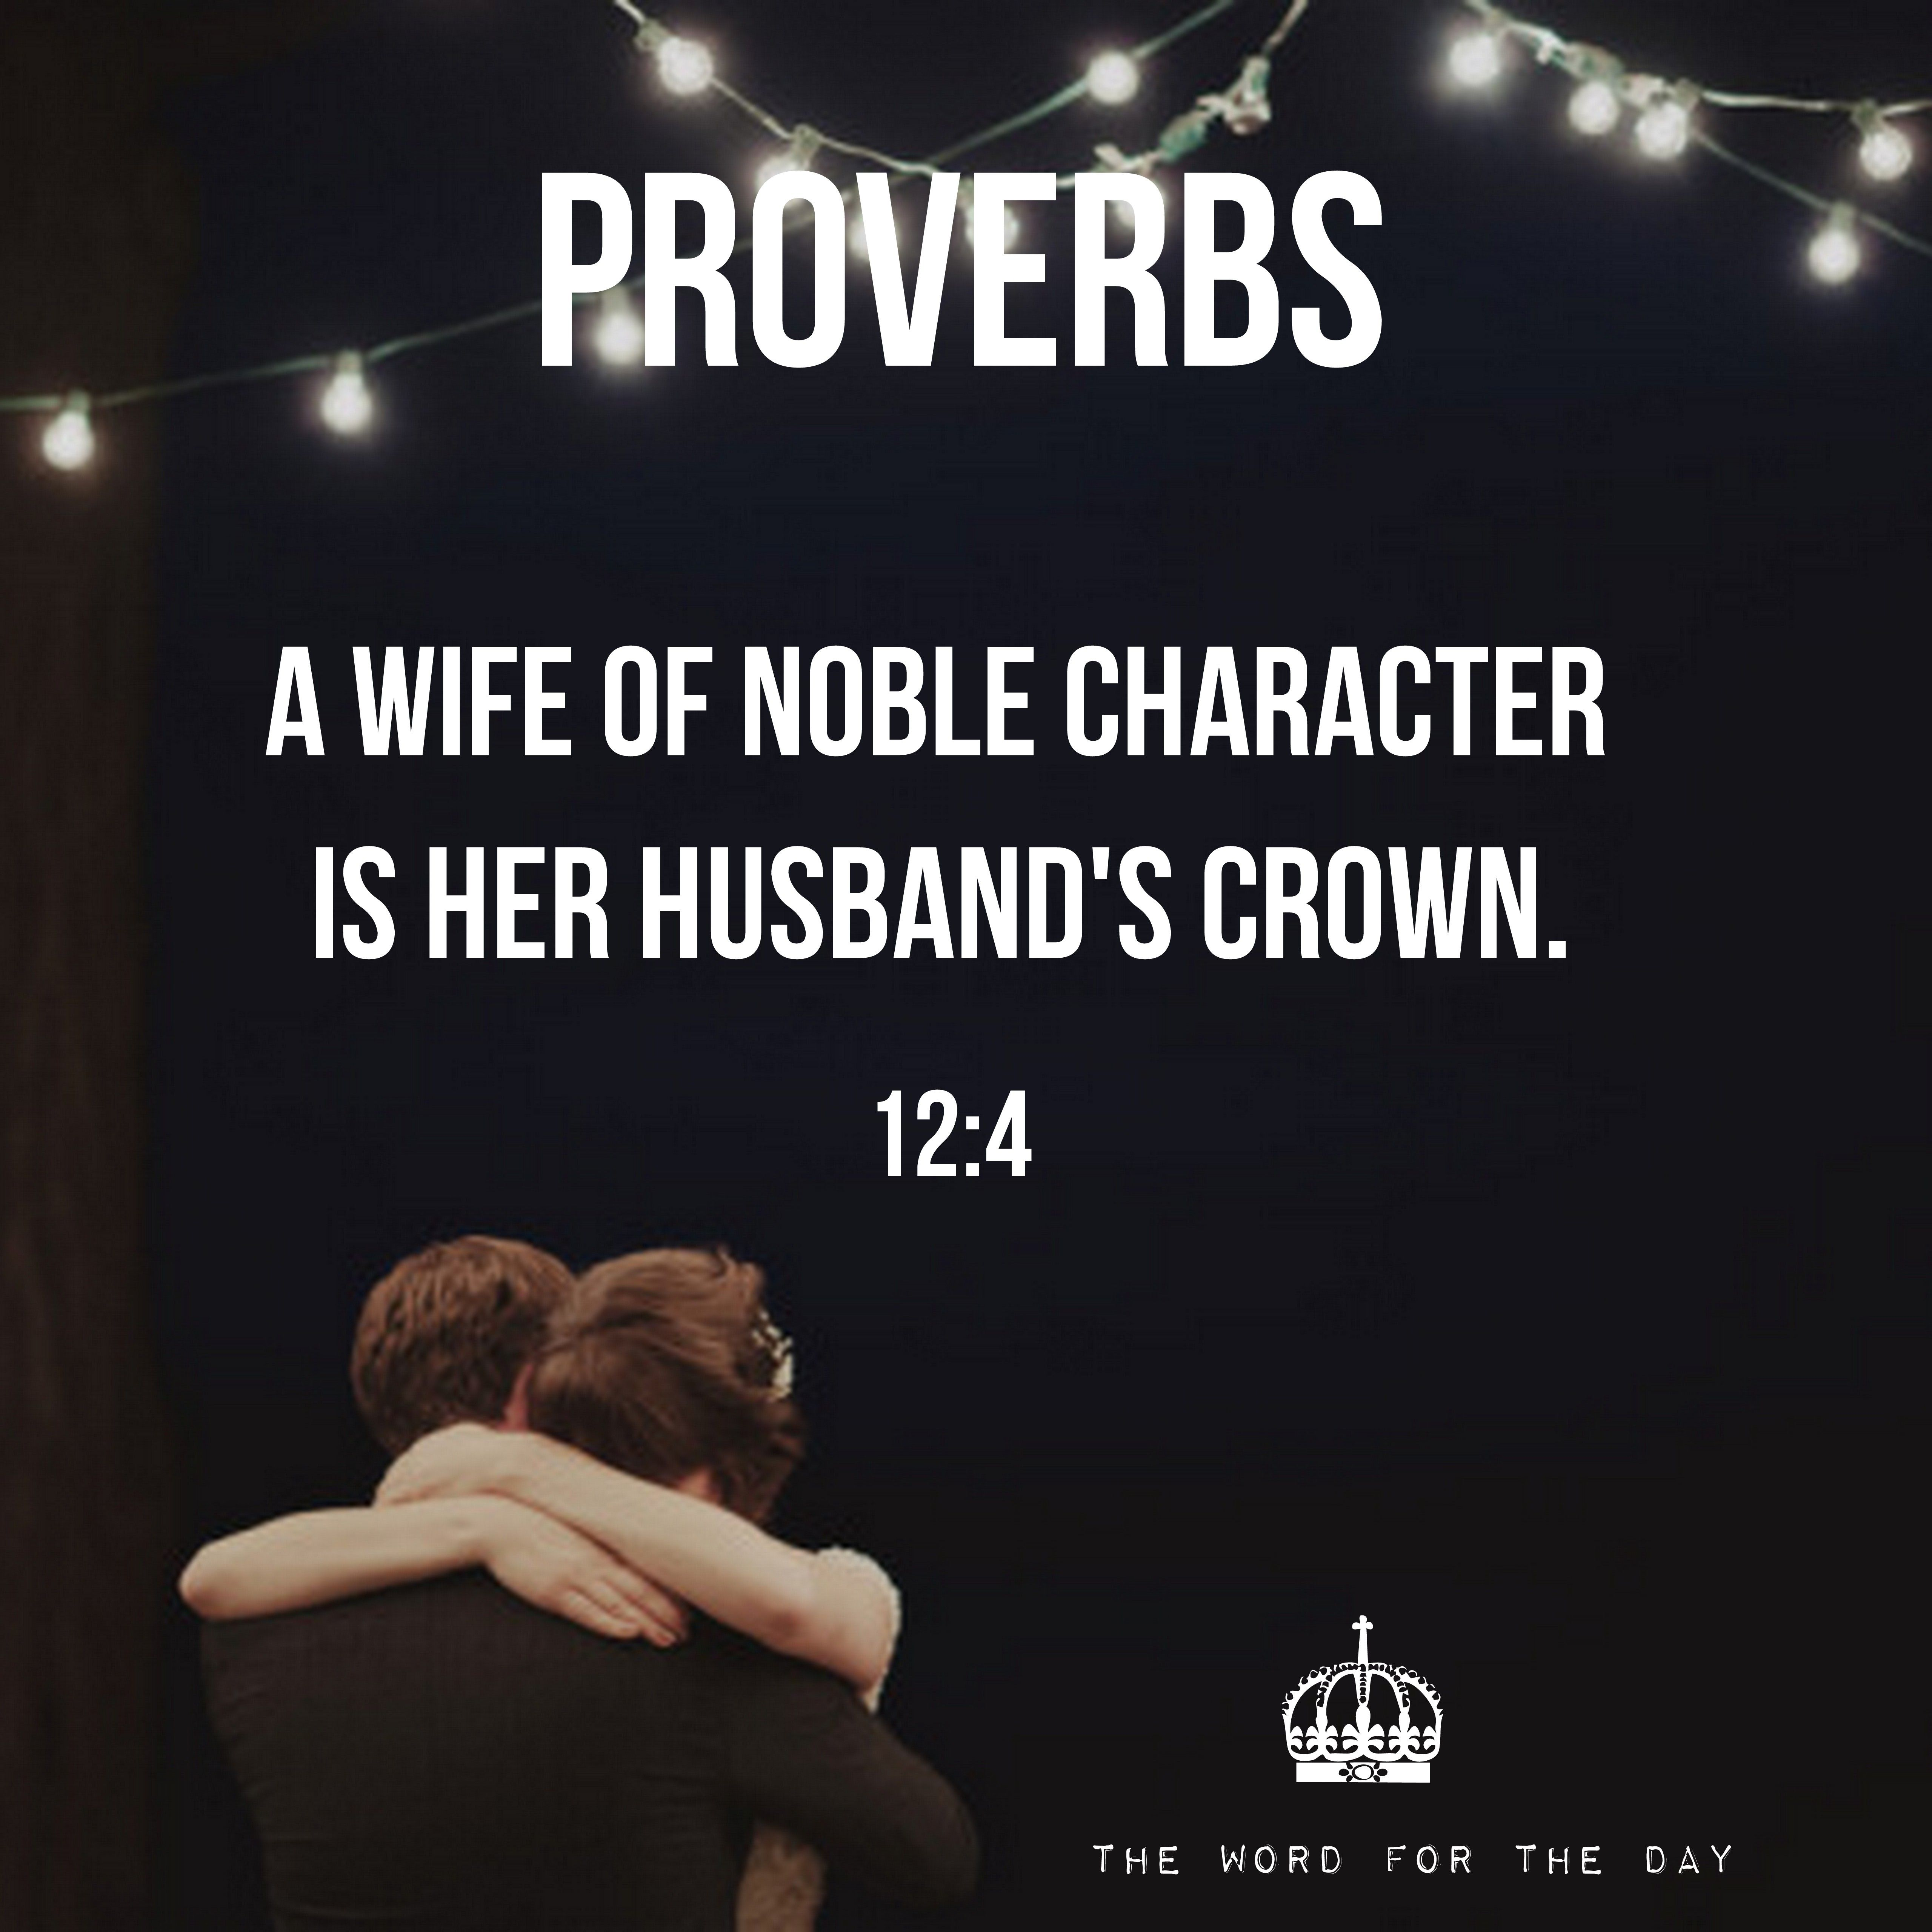 Proverbs Christian Quotes Bible Verse Godly Relationship